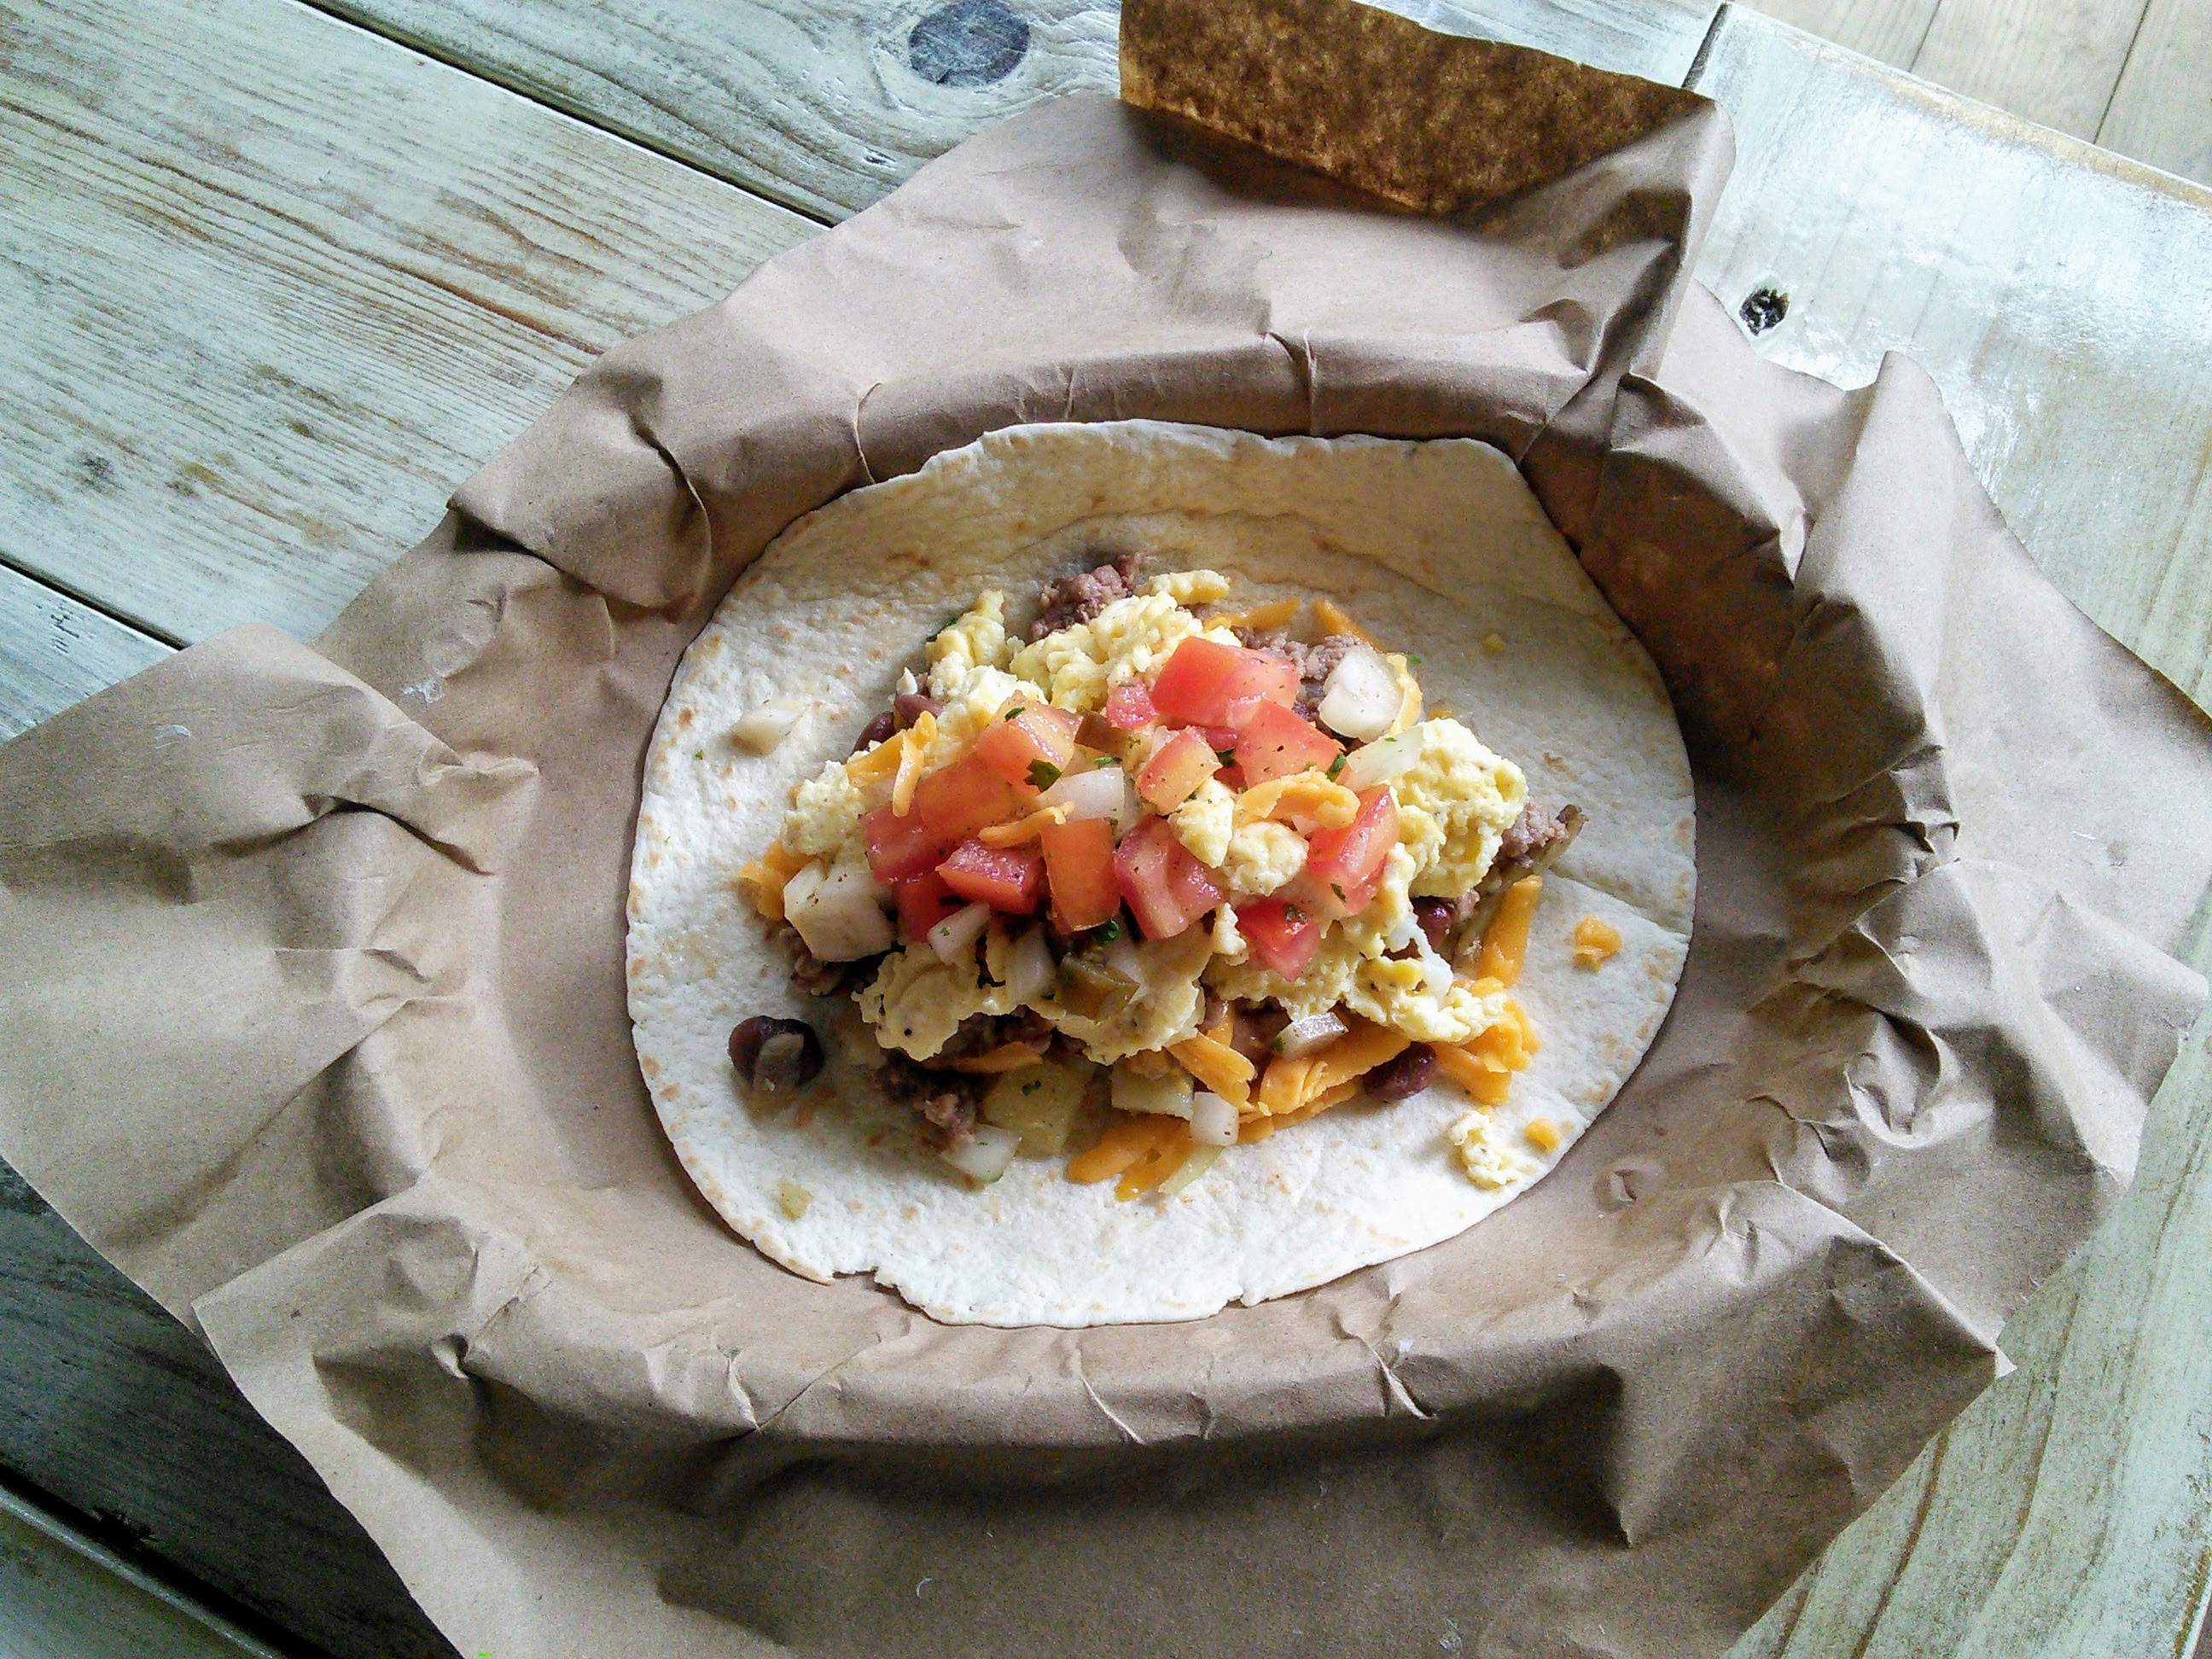 The Boss Taco with Ground Beef, Charro Beans, Potato Hash, Eggs, Cheddar Cheese and Pico de Gallo